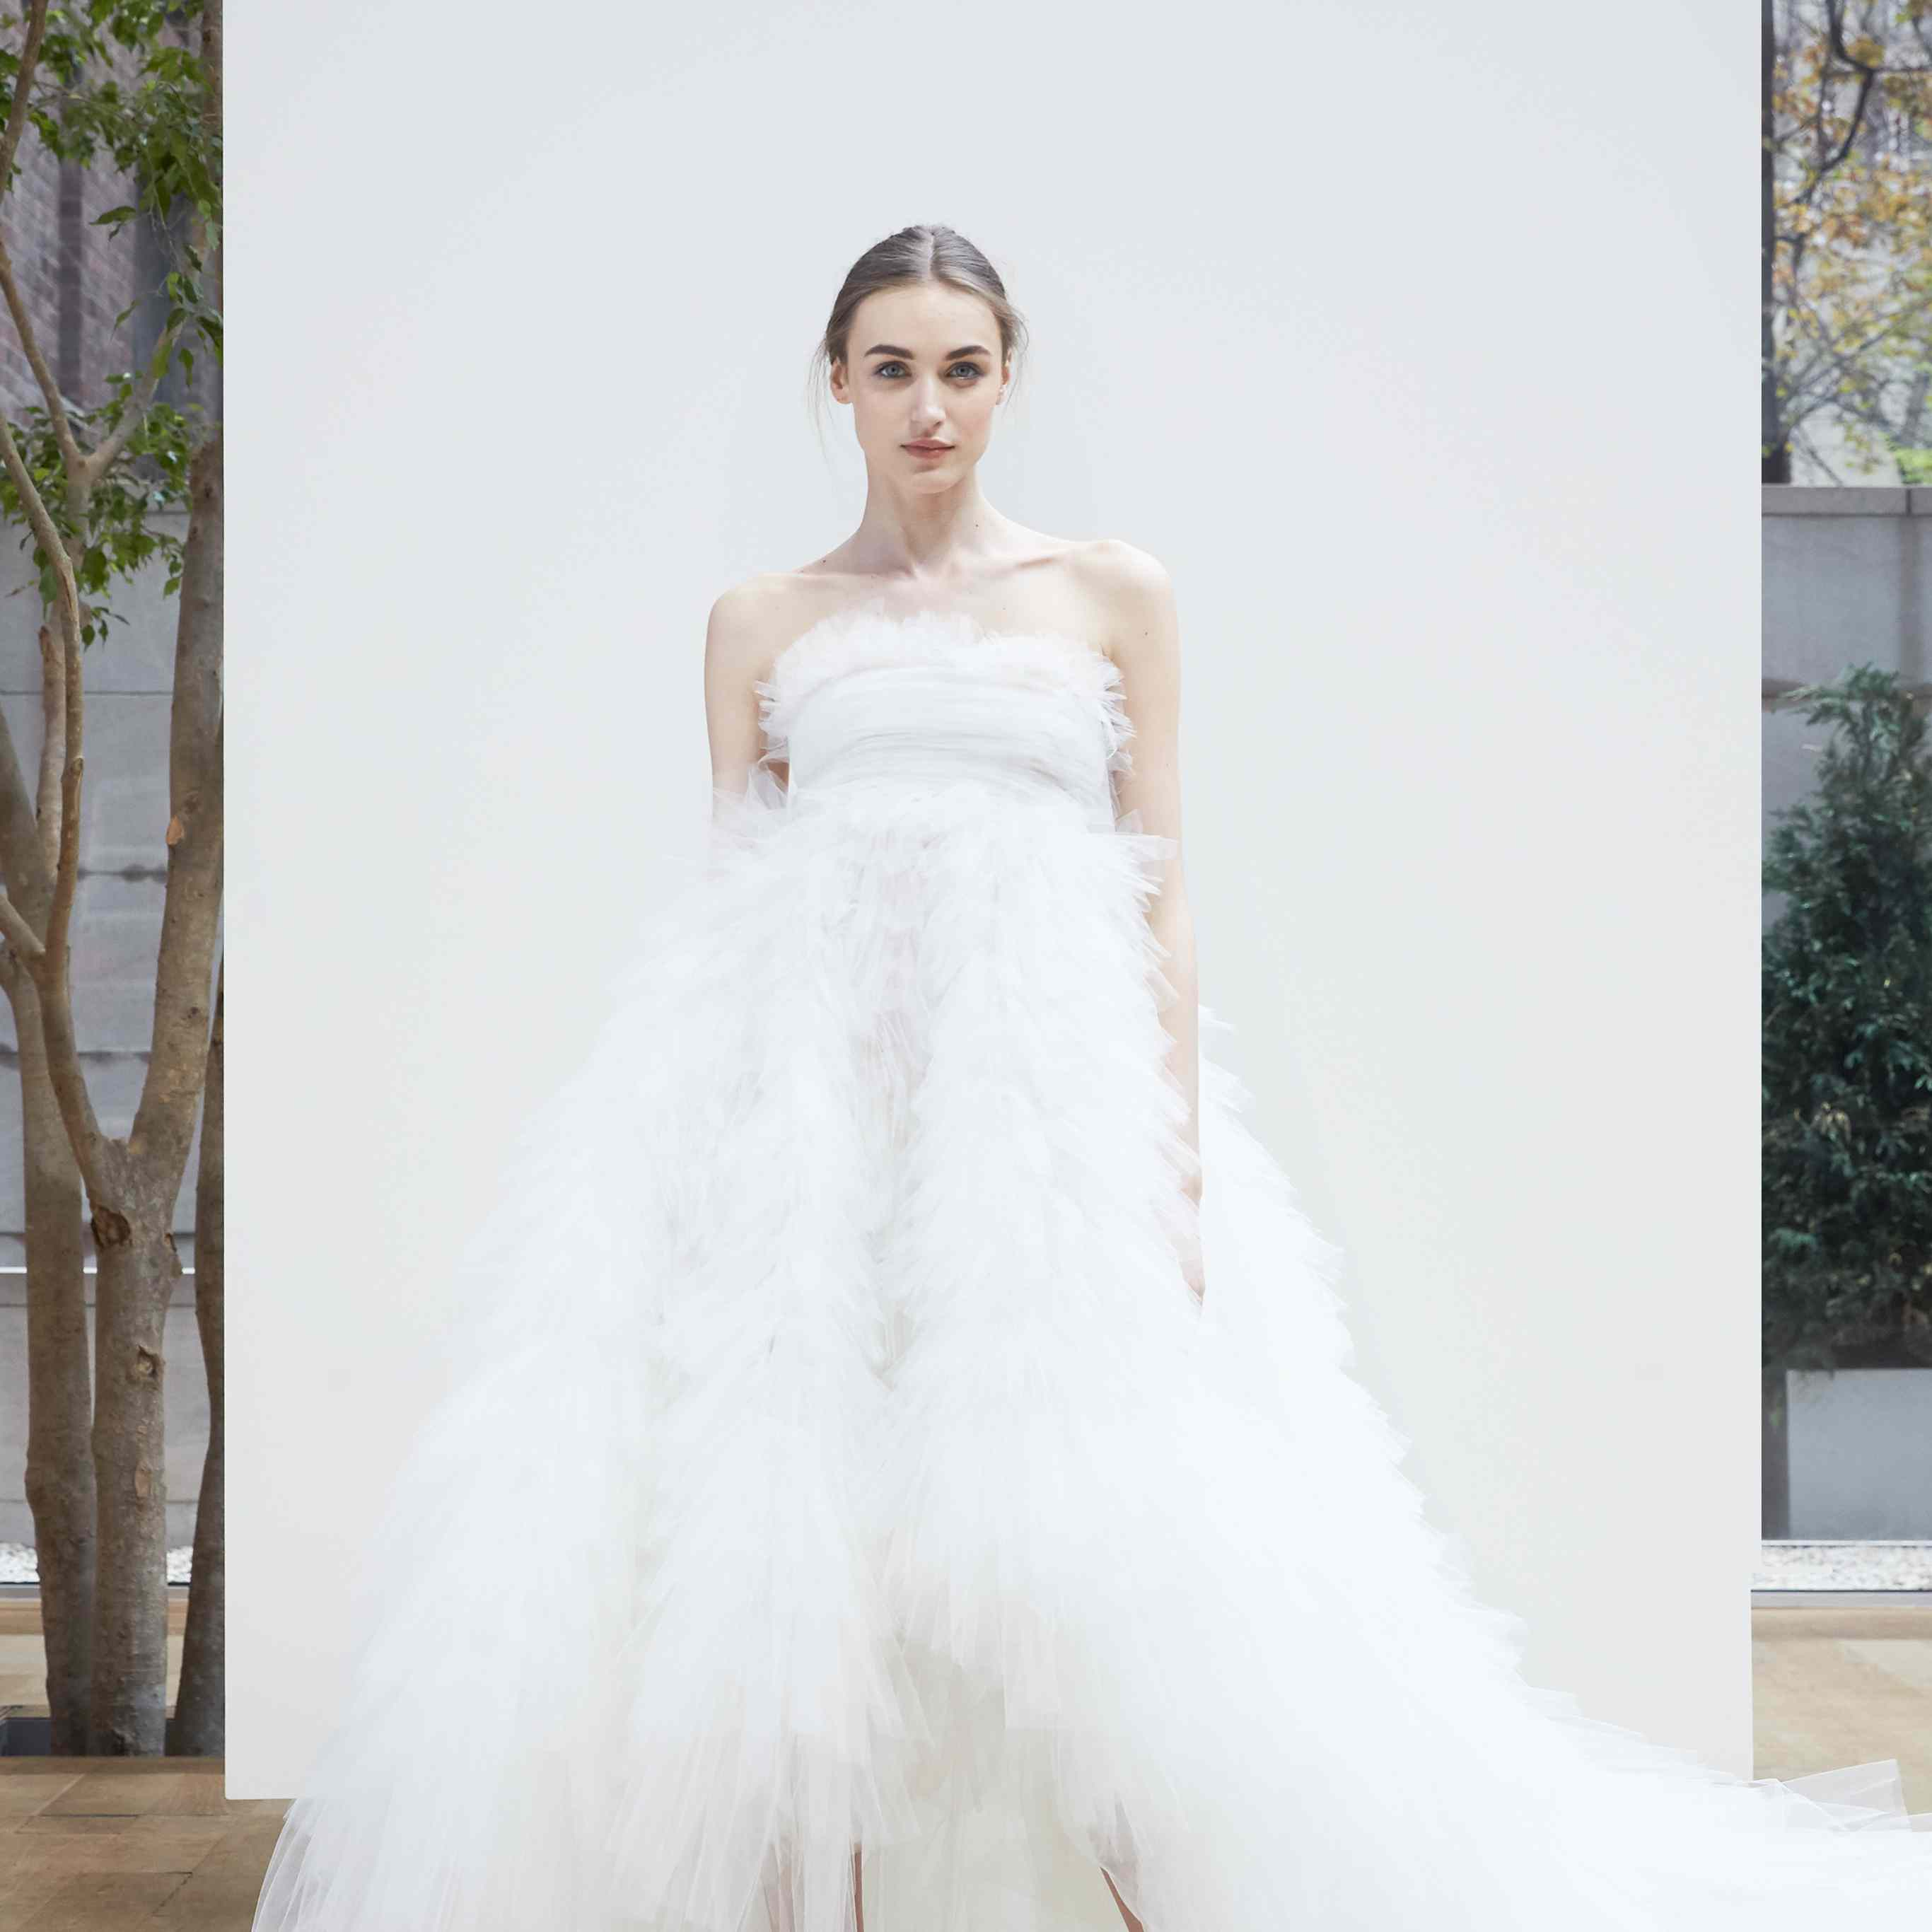 Over The Top Wedding Gowns: How To Find The Perfect Wedding Dress For Your Body Type